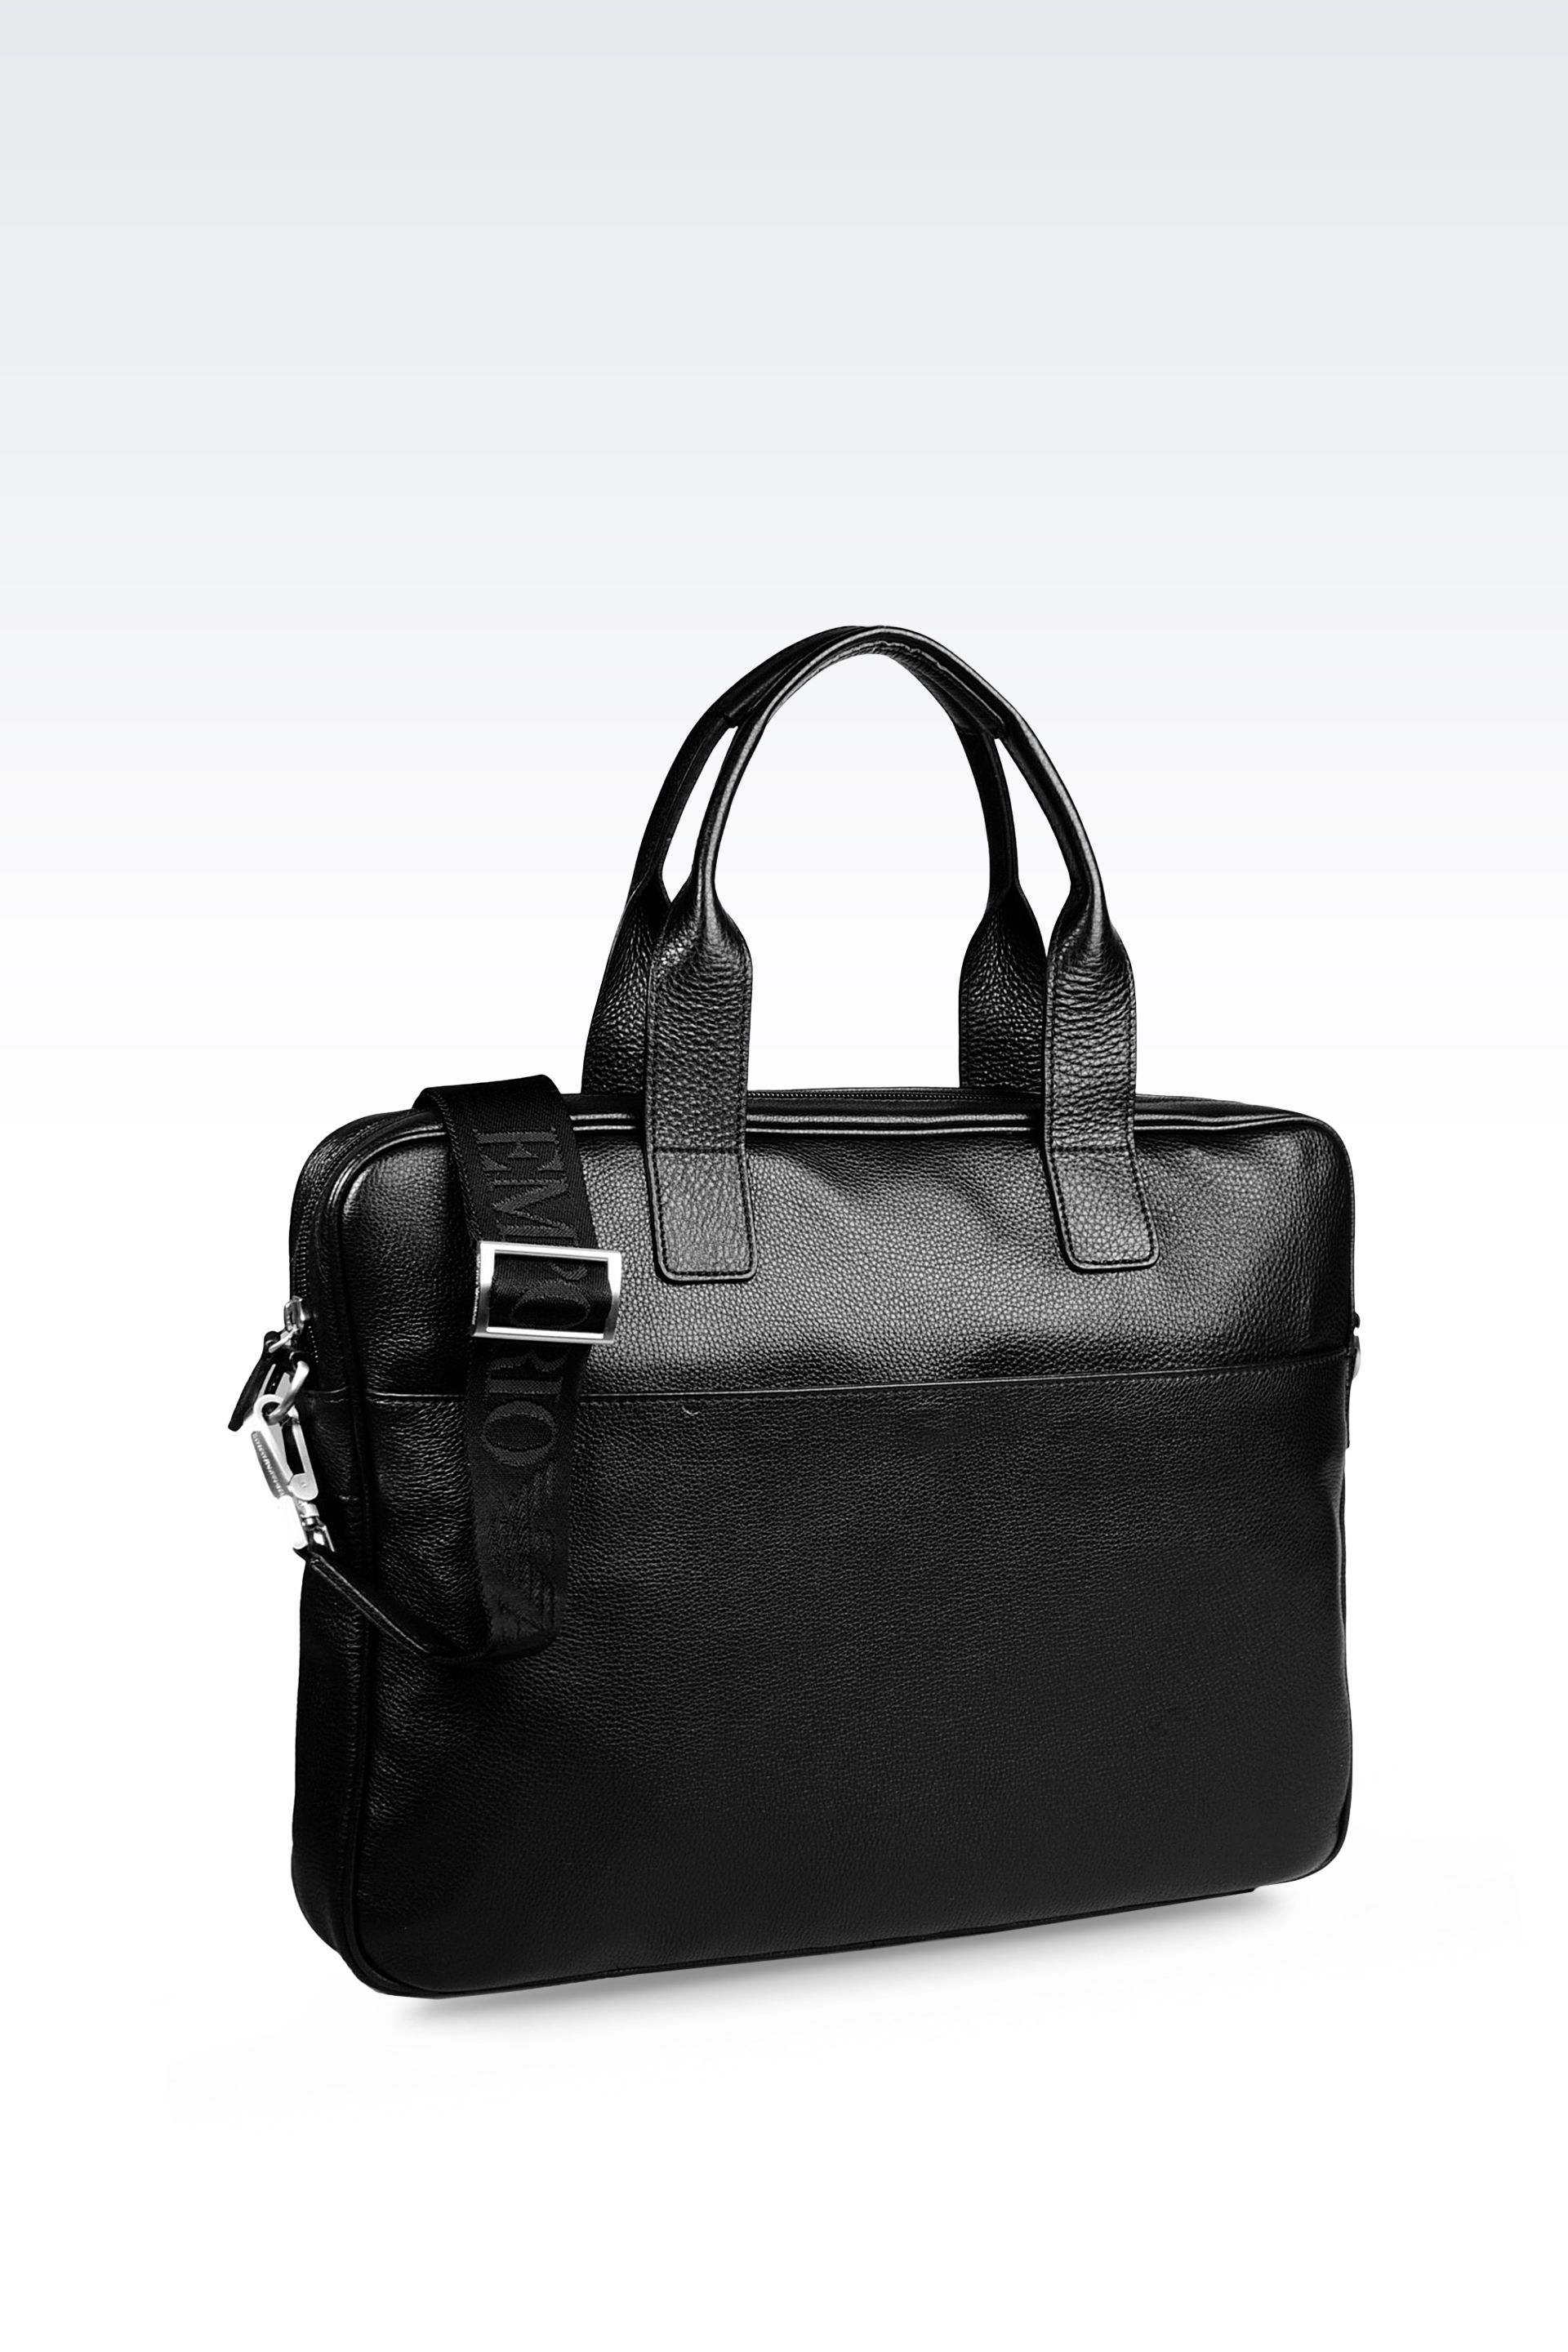 Lyst - Emporio Armani Laptop Bag In Tumbled Calfskin in Black for Men c61e8f6fe7779